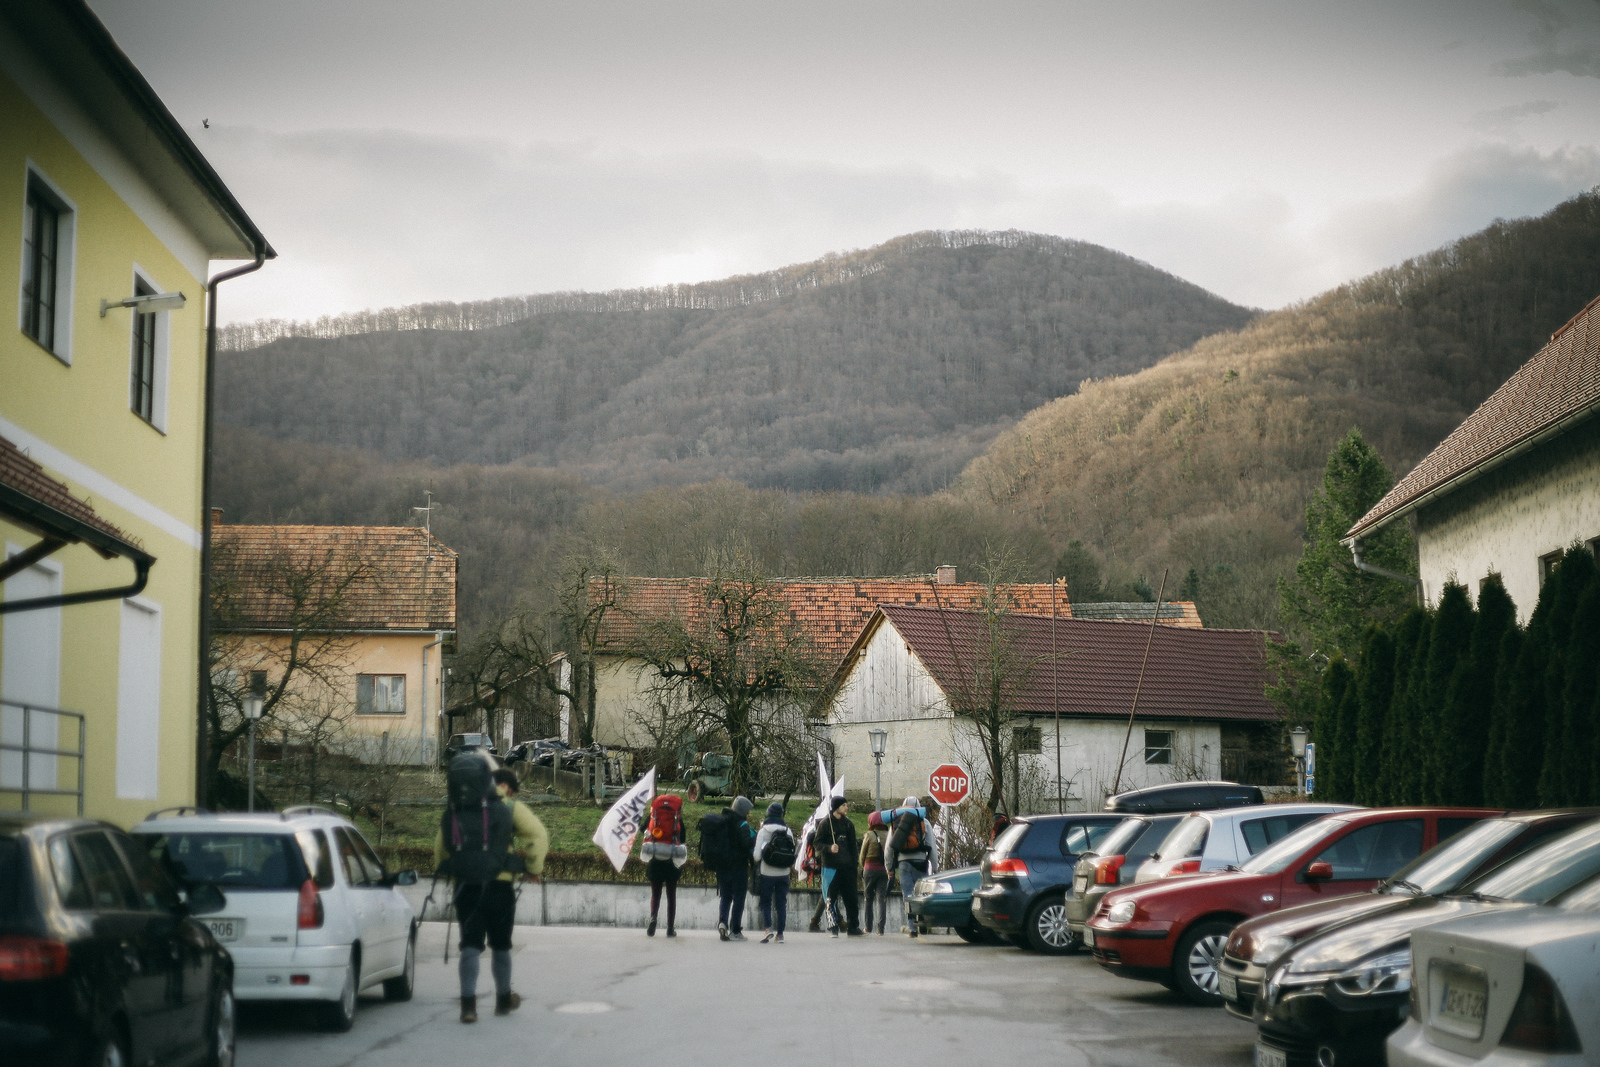 Marching group is leaving in the eraly morning, last meters in Slovenia.